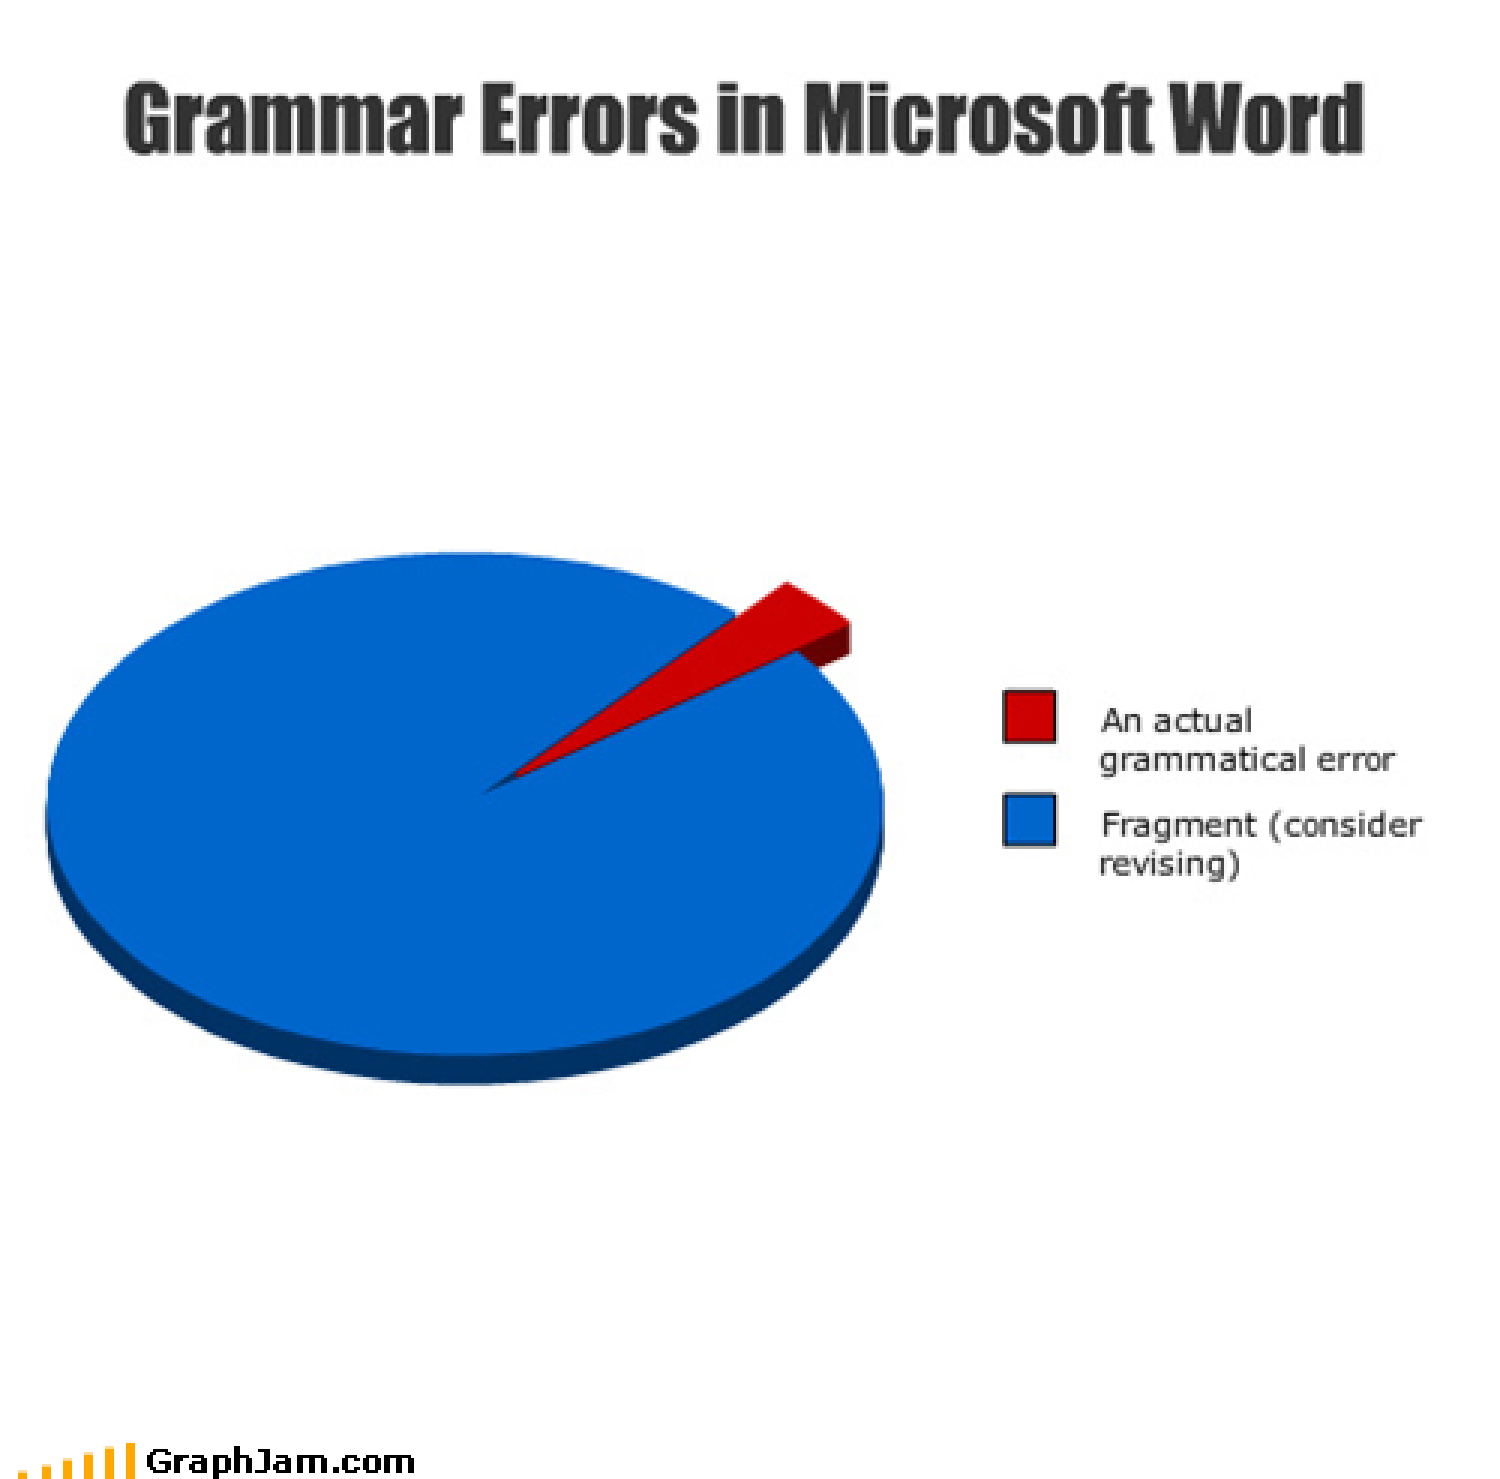 Grammar errors in Microsoft Word Infographic